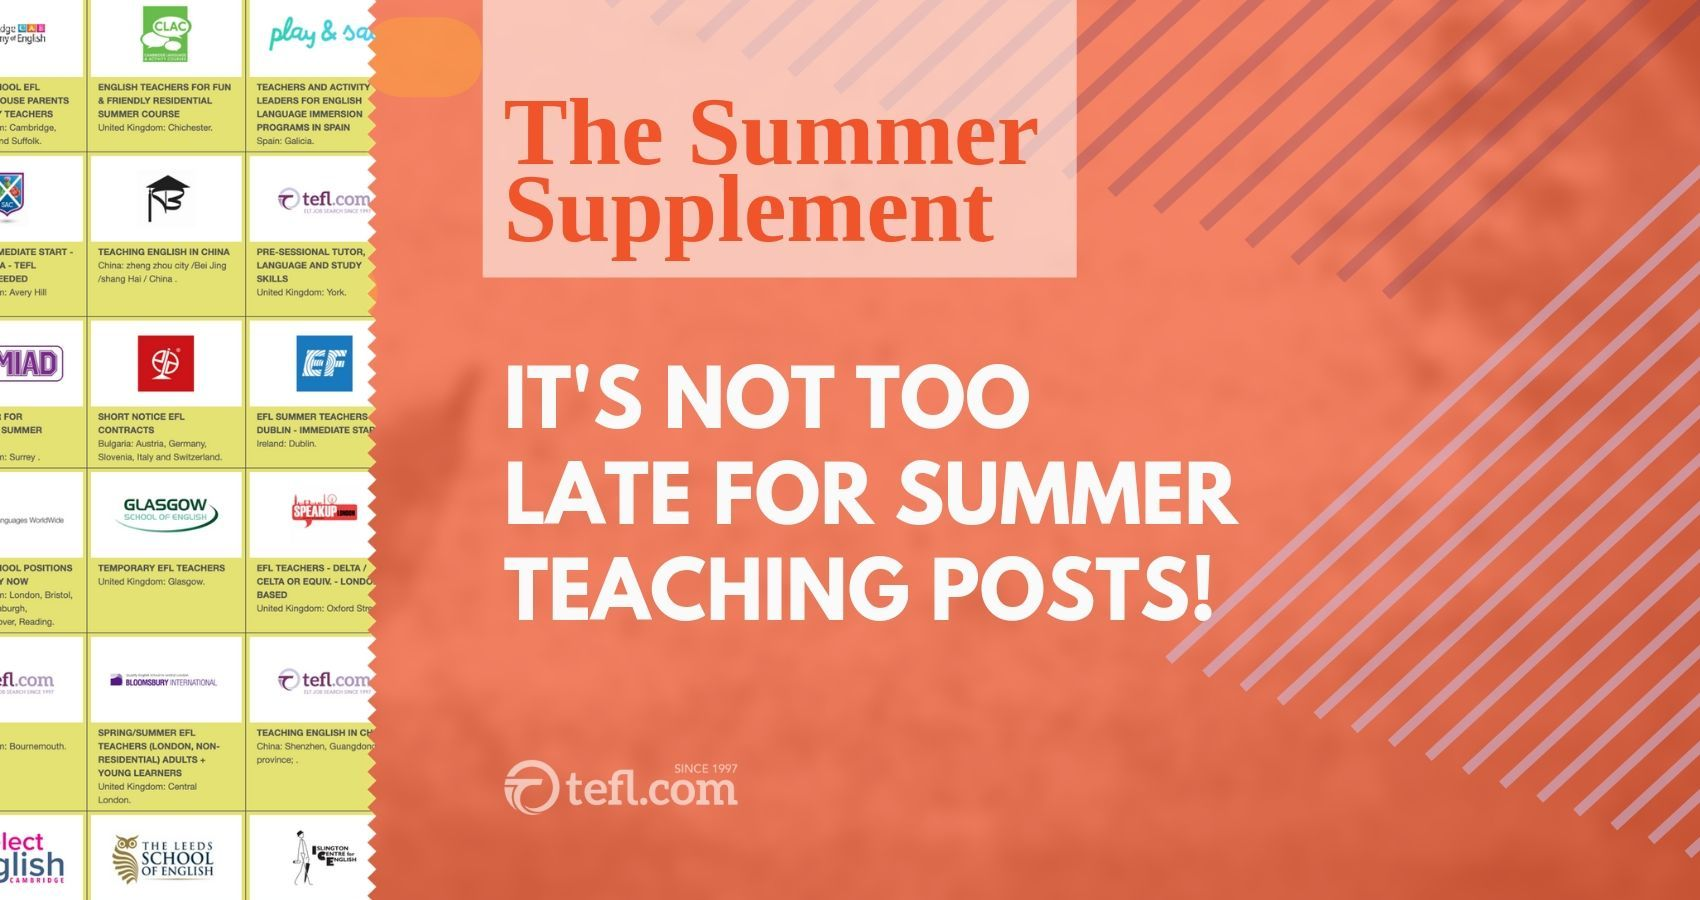 Last minute Summer Teaching! It may be July, but there are